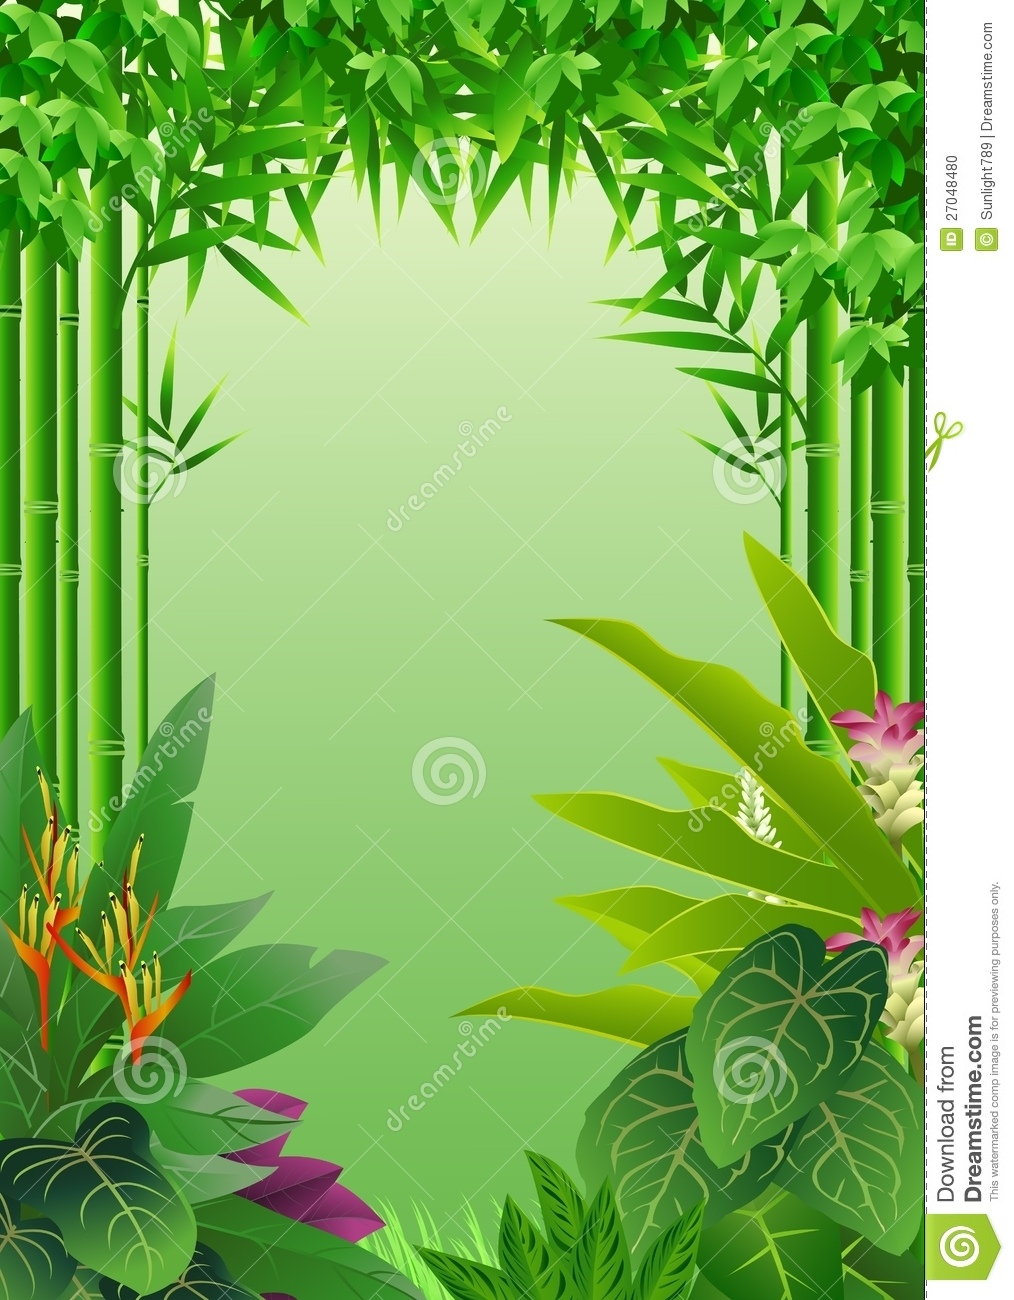 Animated jungle background vector